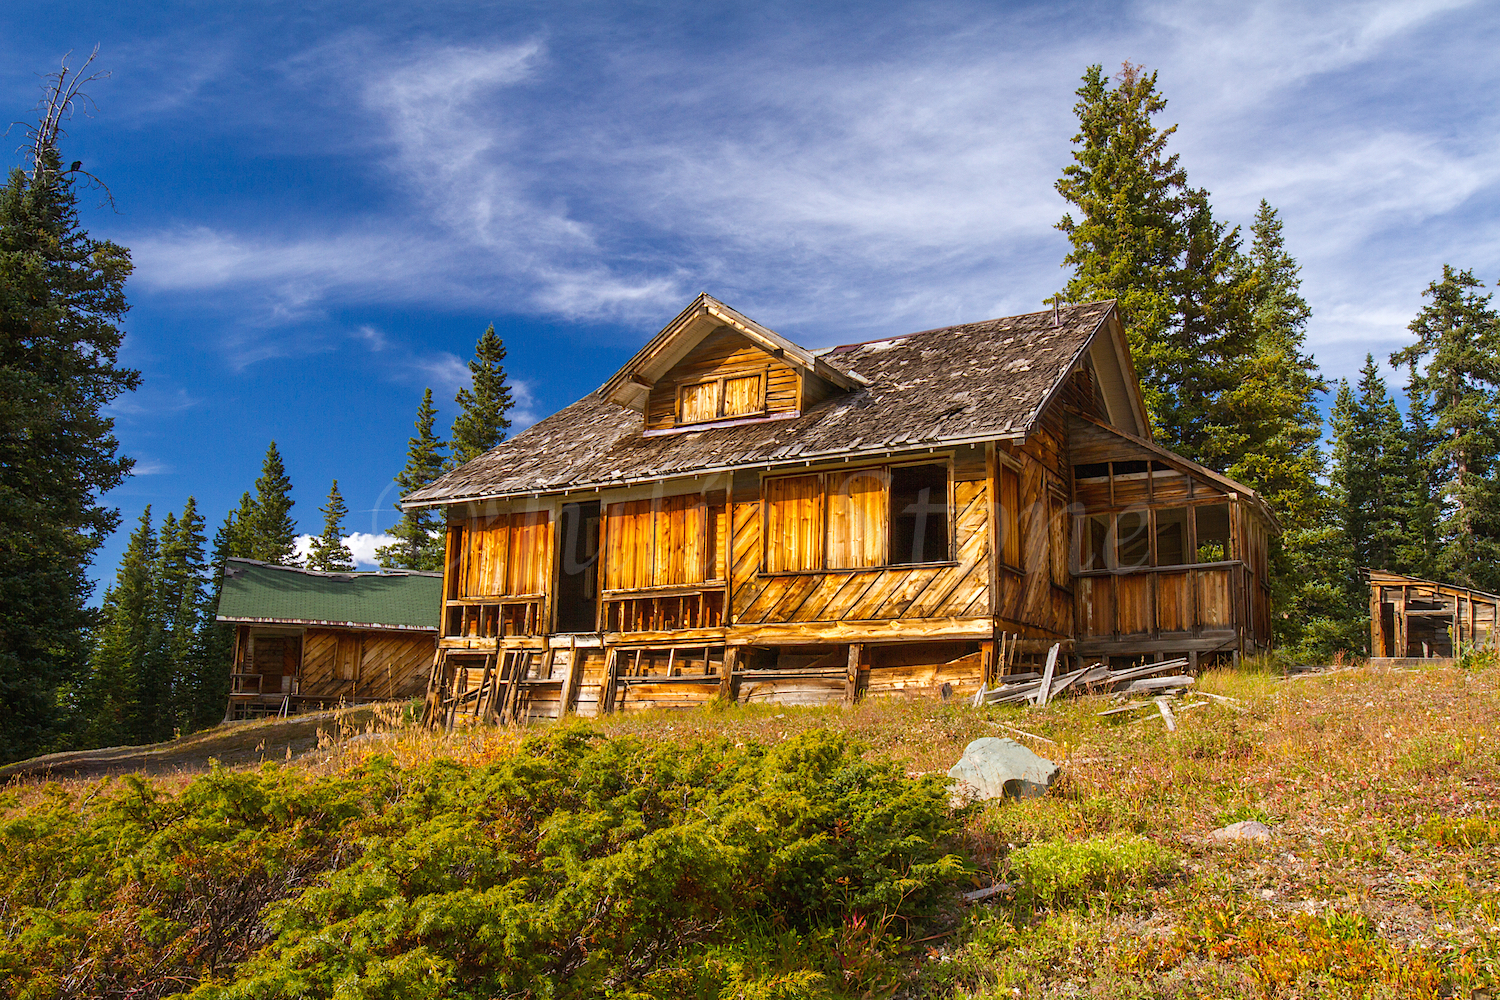 Alta Ghost Town, Image #3413